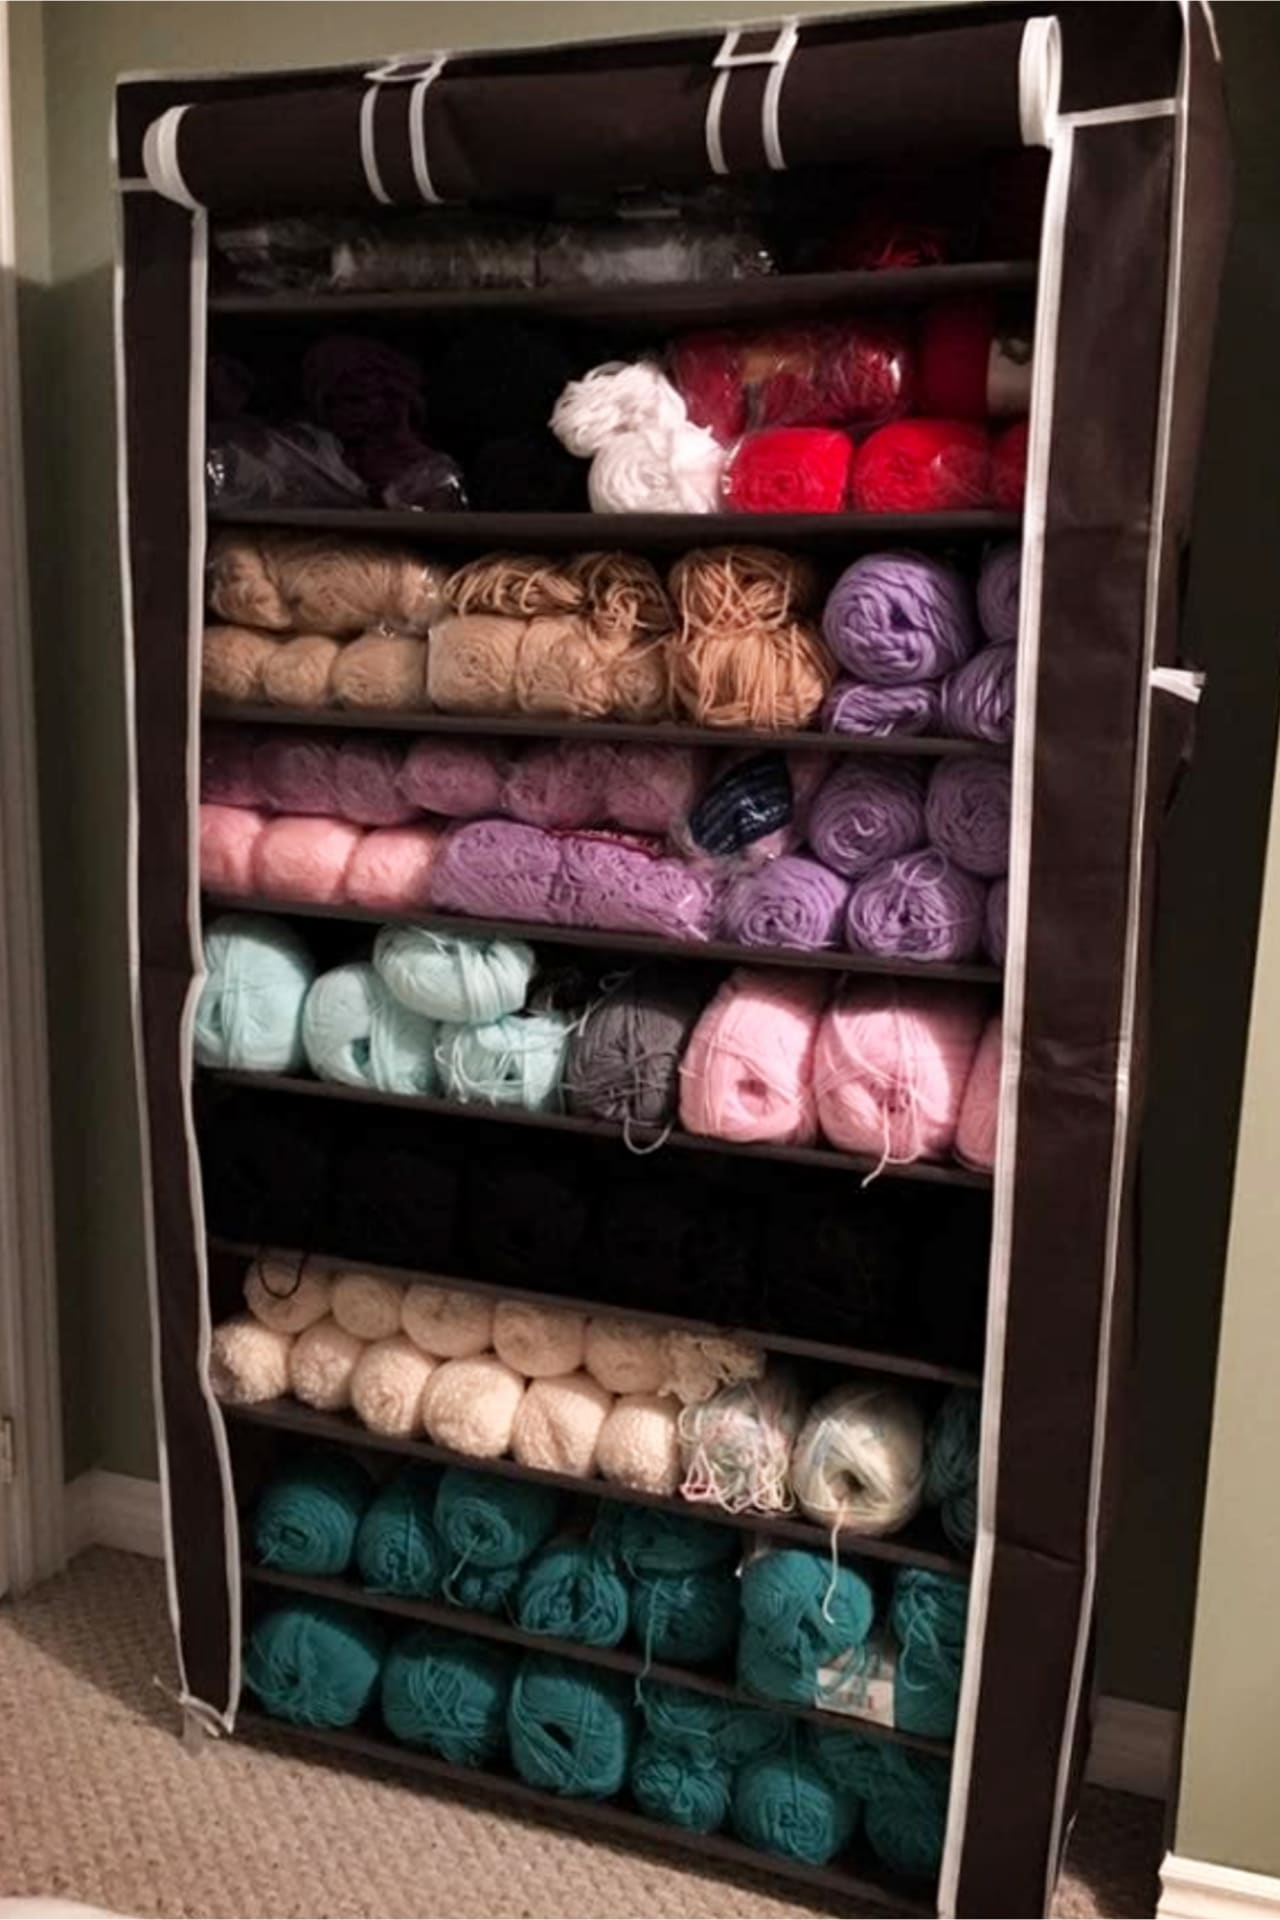 Craft room organization on a budget - organizing yarn - GENIUS way to organize my yarn in my craft room /  sewing room!  I need one of these portable organizer shelving systems - also HIDES my yarn and craft supplies!